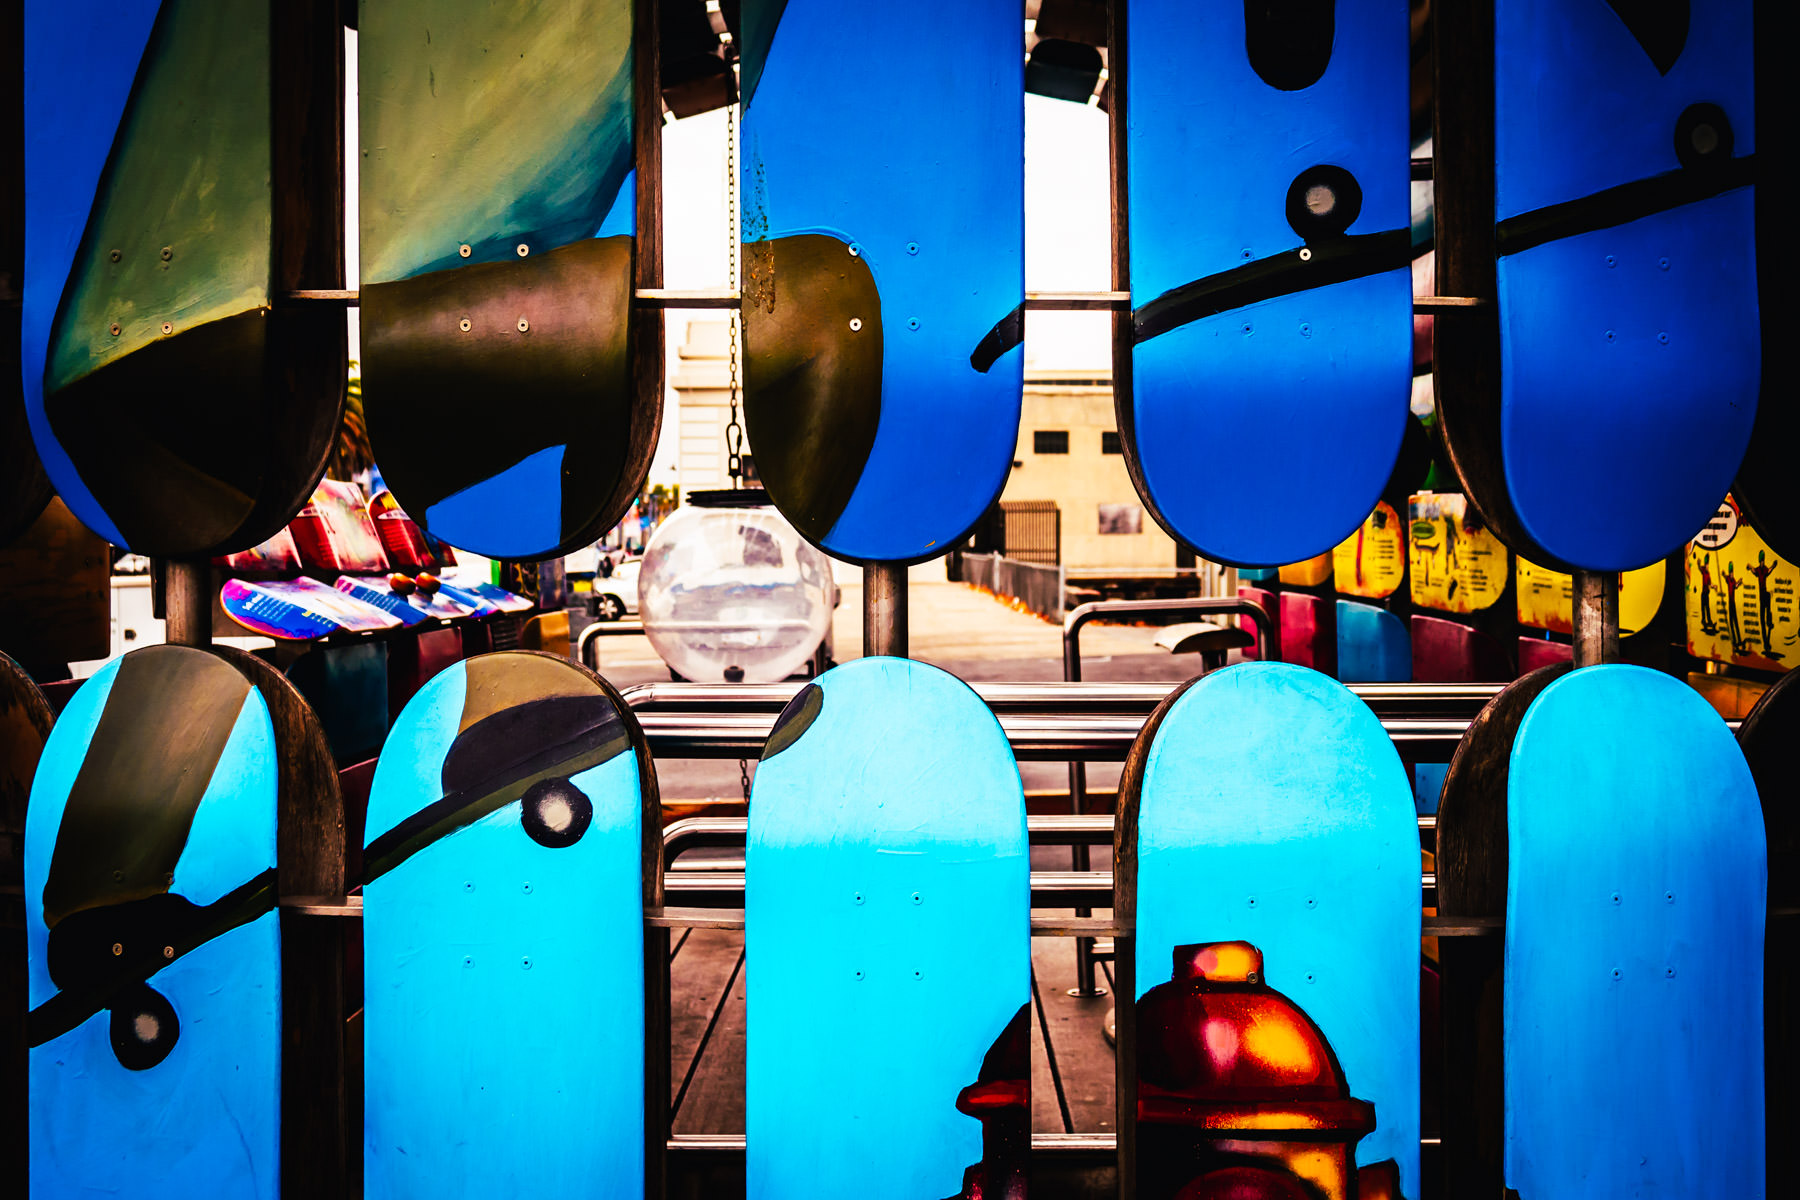 """A few of the roughly 400 skateboards that cover San Francisco's Exploratorium's """"skateboard science trailer parklet"""" resemble the colorful teeth of an imagined monster."""